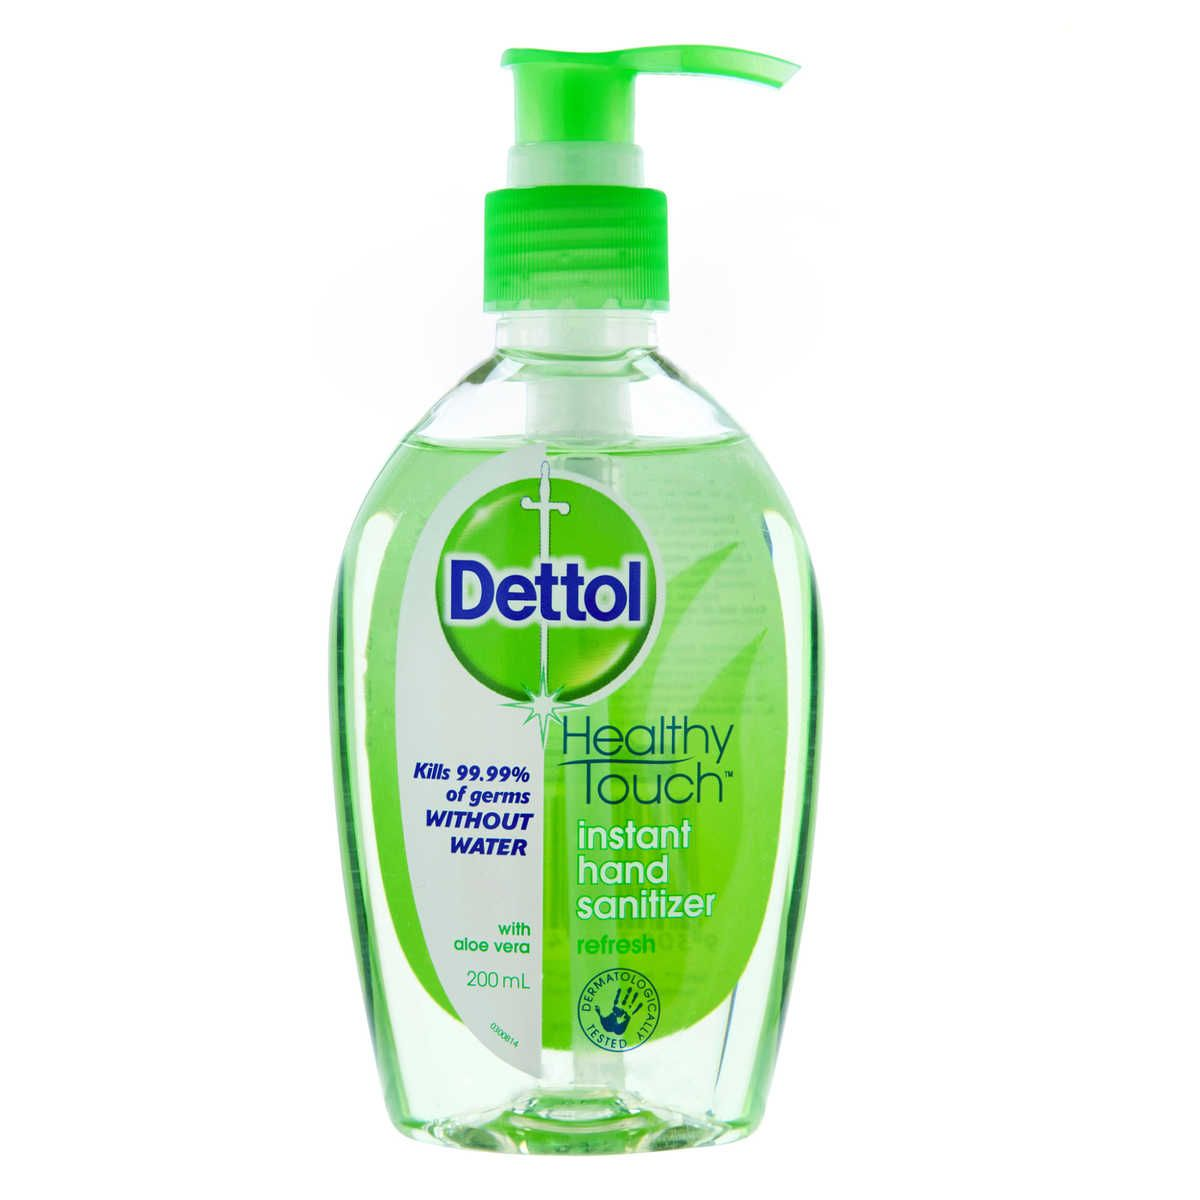 Dettol Healthy Touch Instant Hand Sanitiser Refresh With Aloe Vera